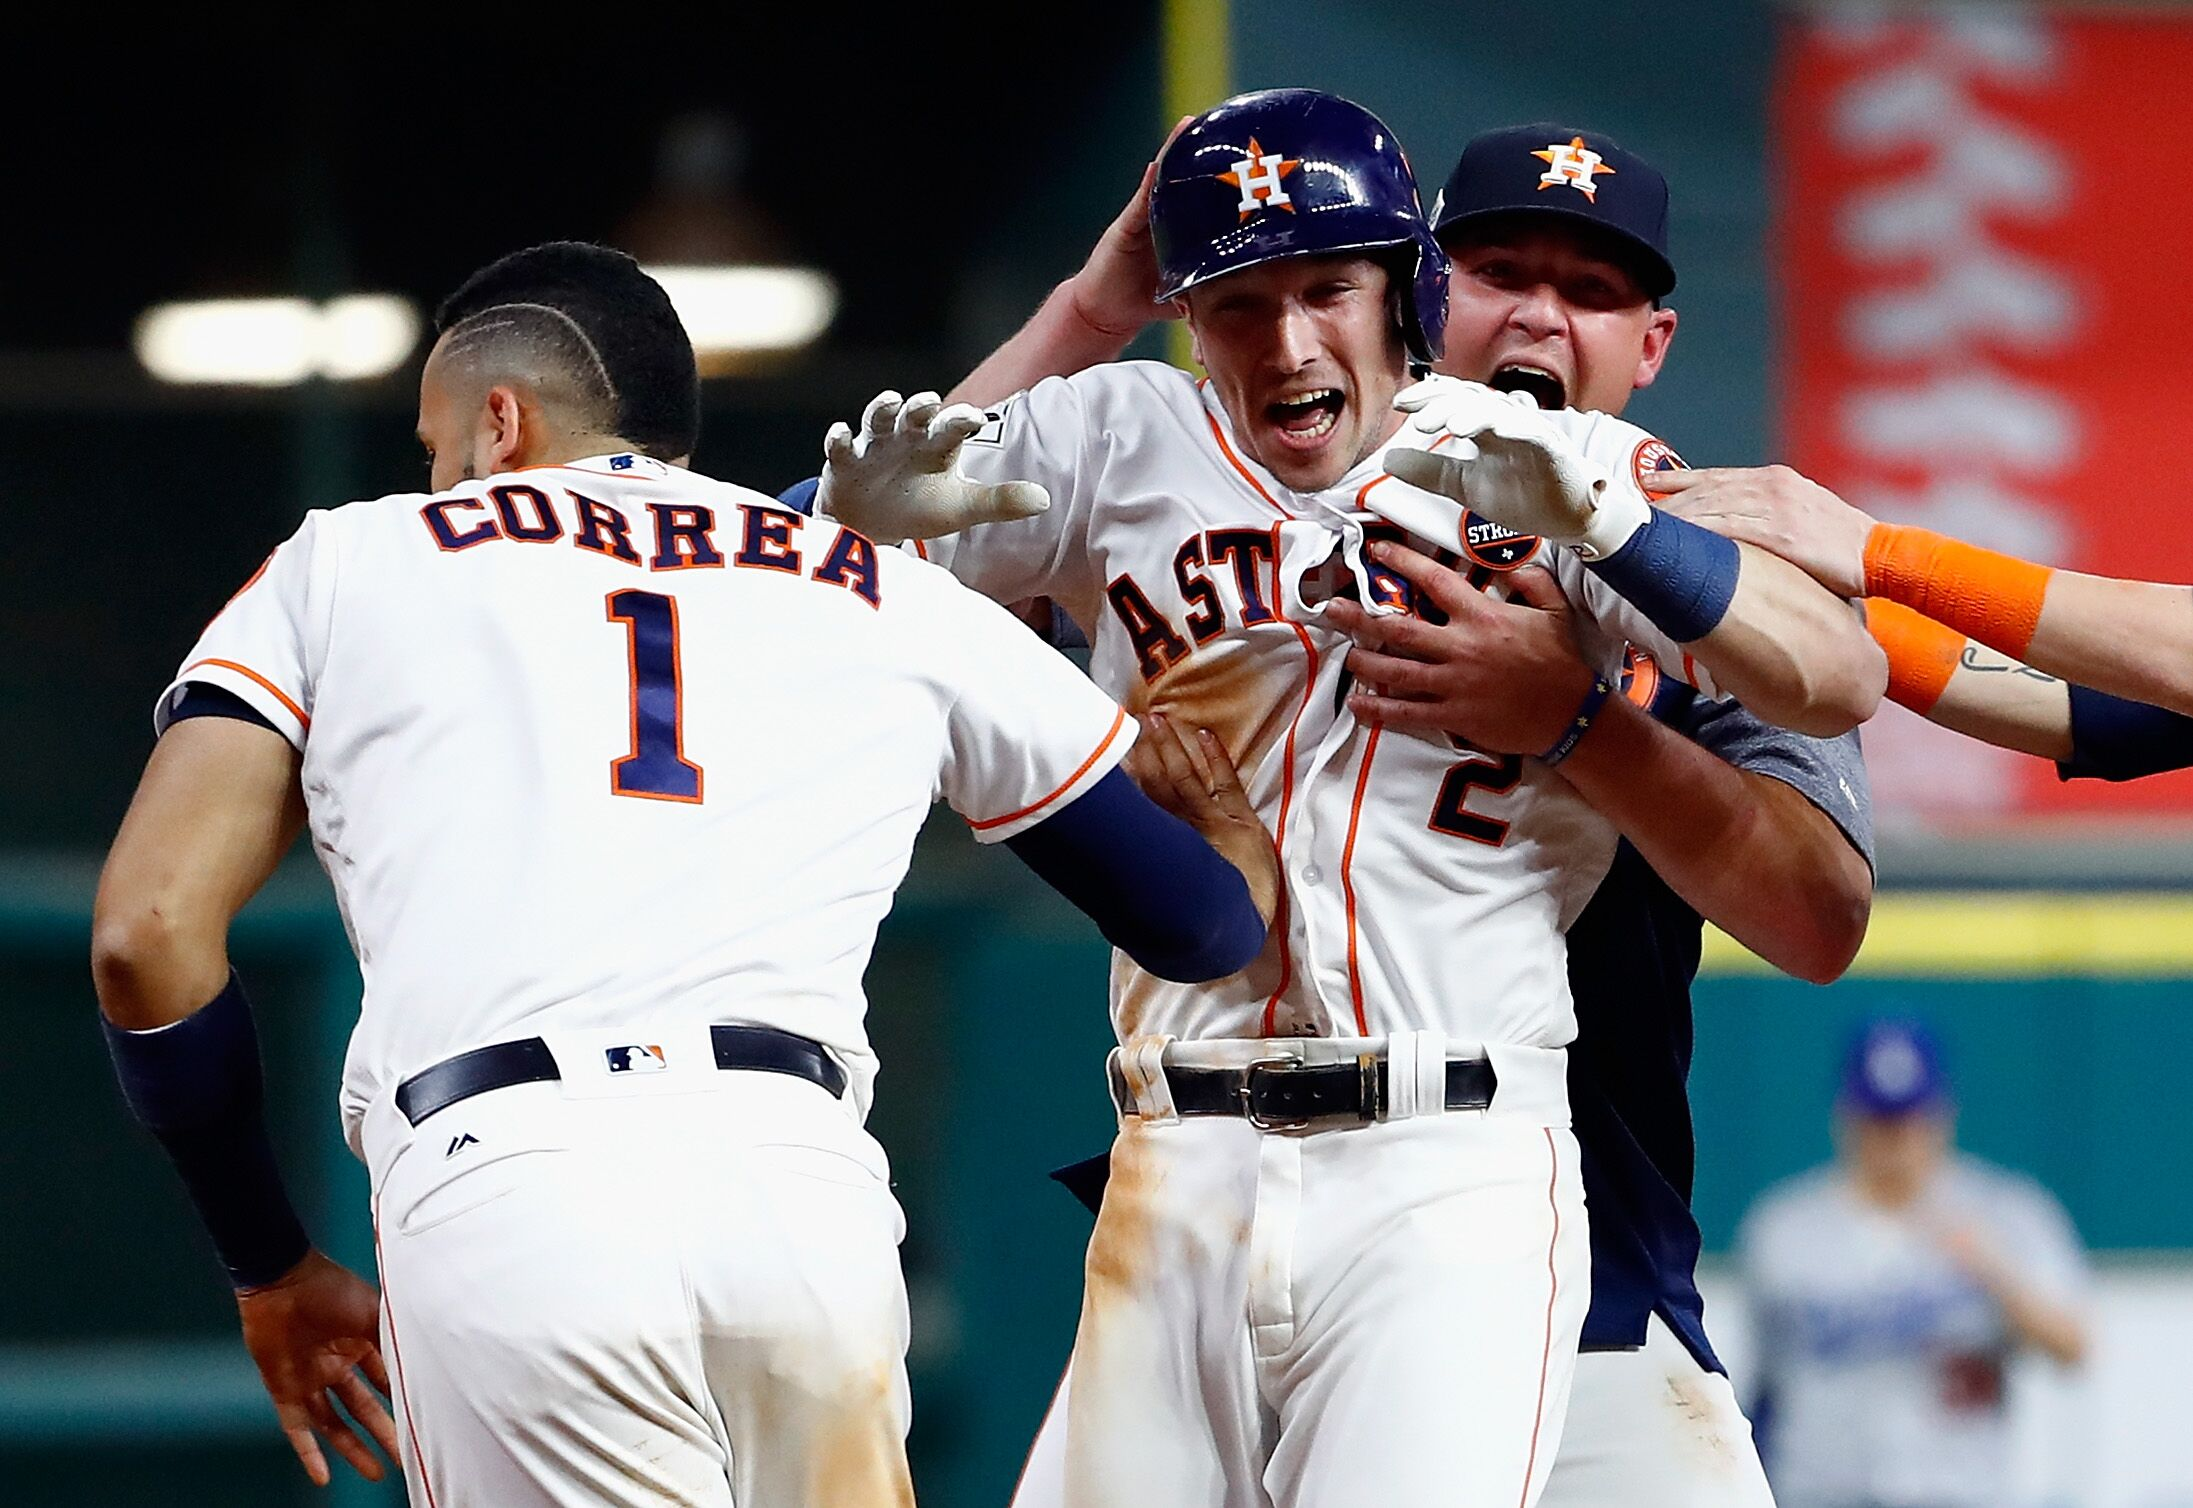 868013592-world-series-los-angeles-dodgers-v-houston-astros-game-five.jpg